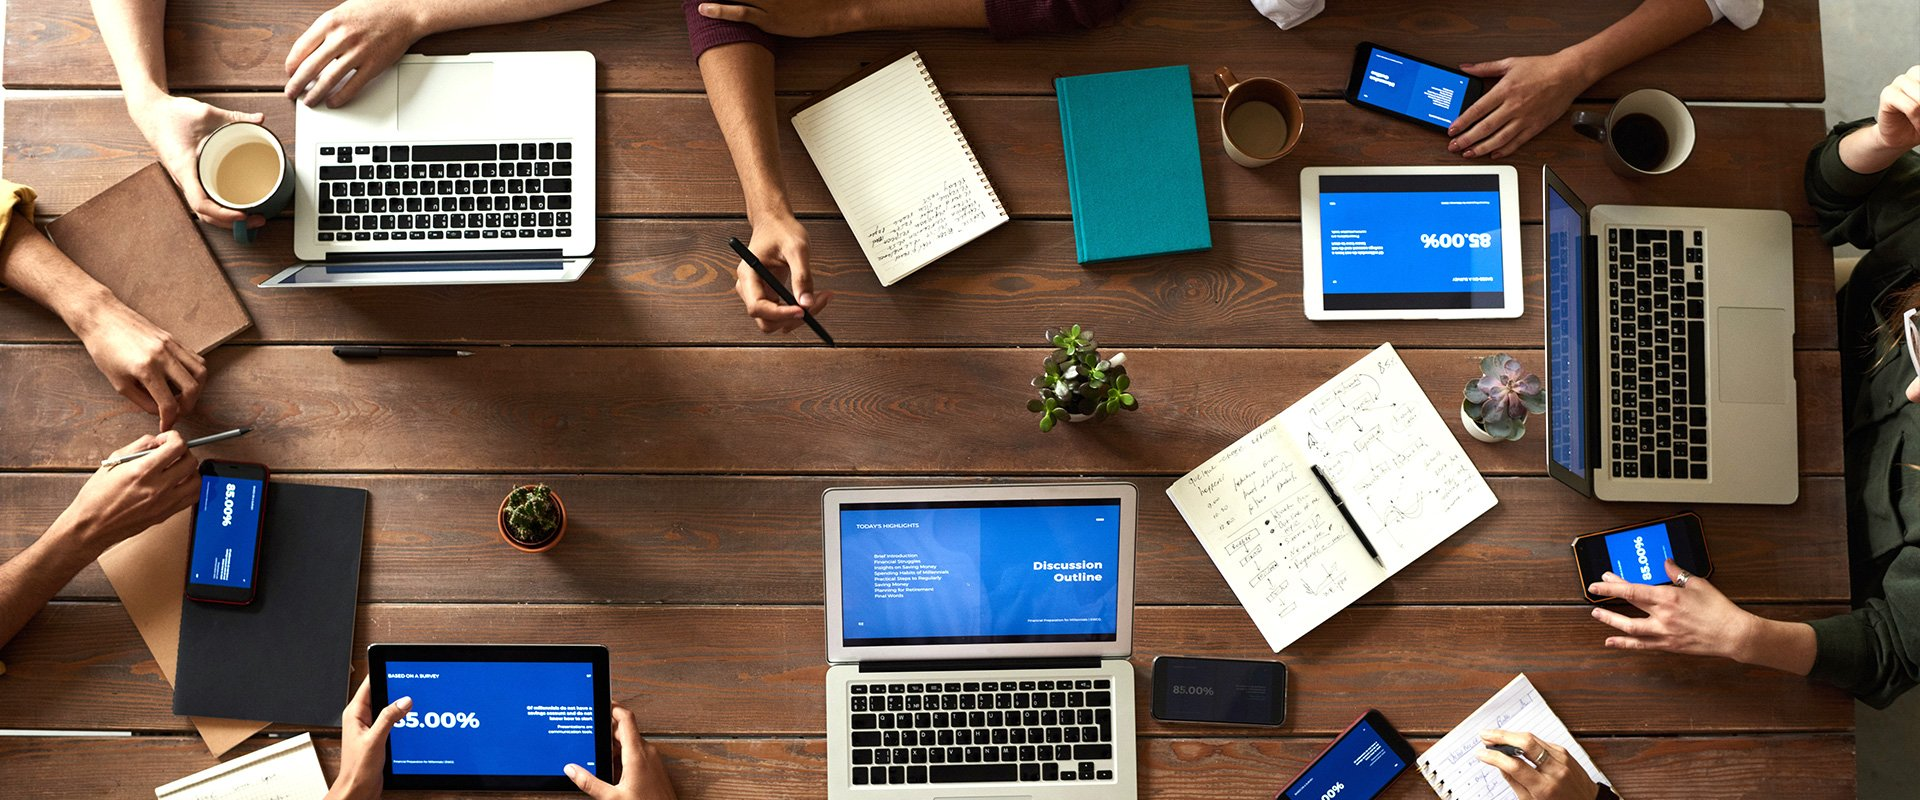 Meeting at a table with multiple devices